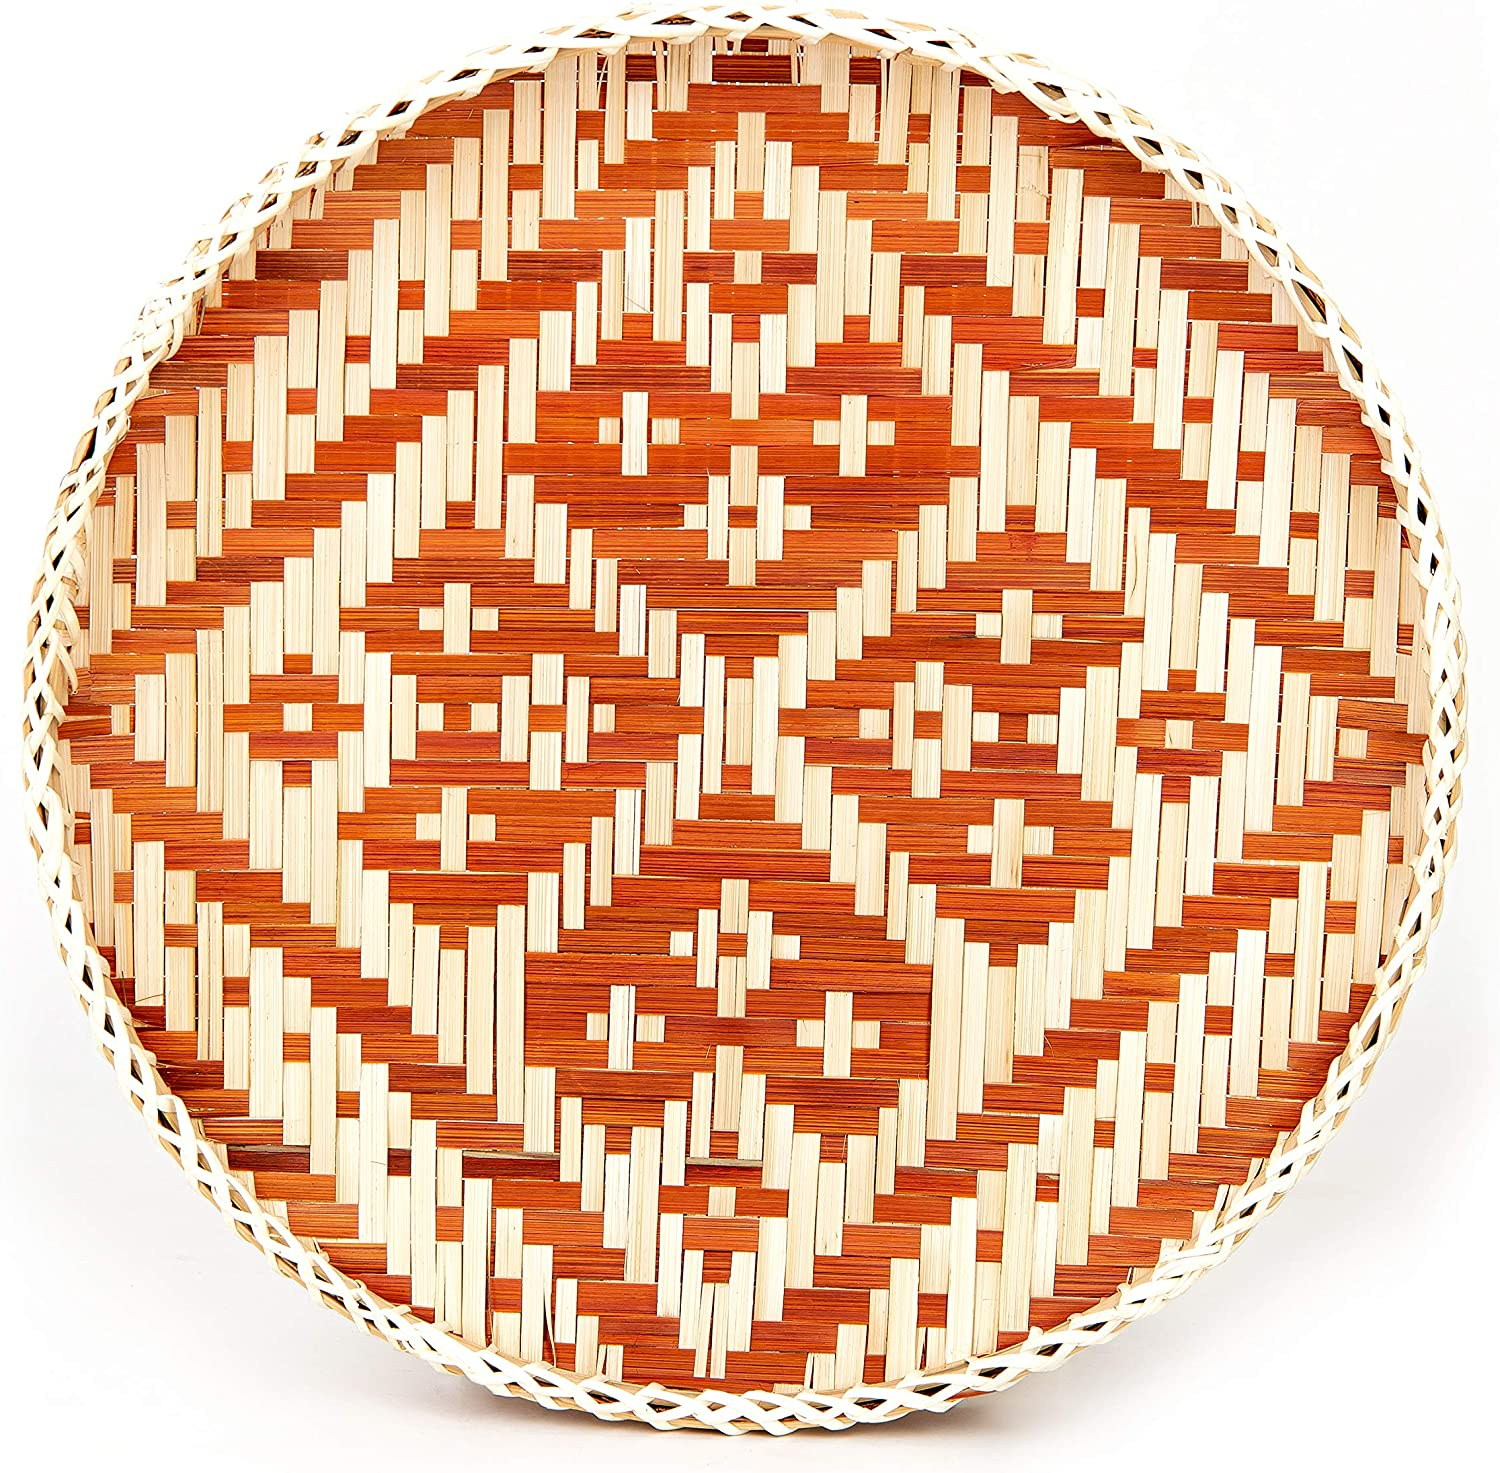 TV BAMBOO Bamboo Tray in Round, Brown Heart Shape Design | Handmade Decorative Trays for Home Decor | Boho Wall Art for Living Room | Bamboo Trays for Food | Woven Basket Wall Decor | 13.8